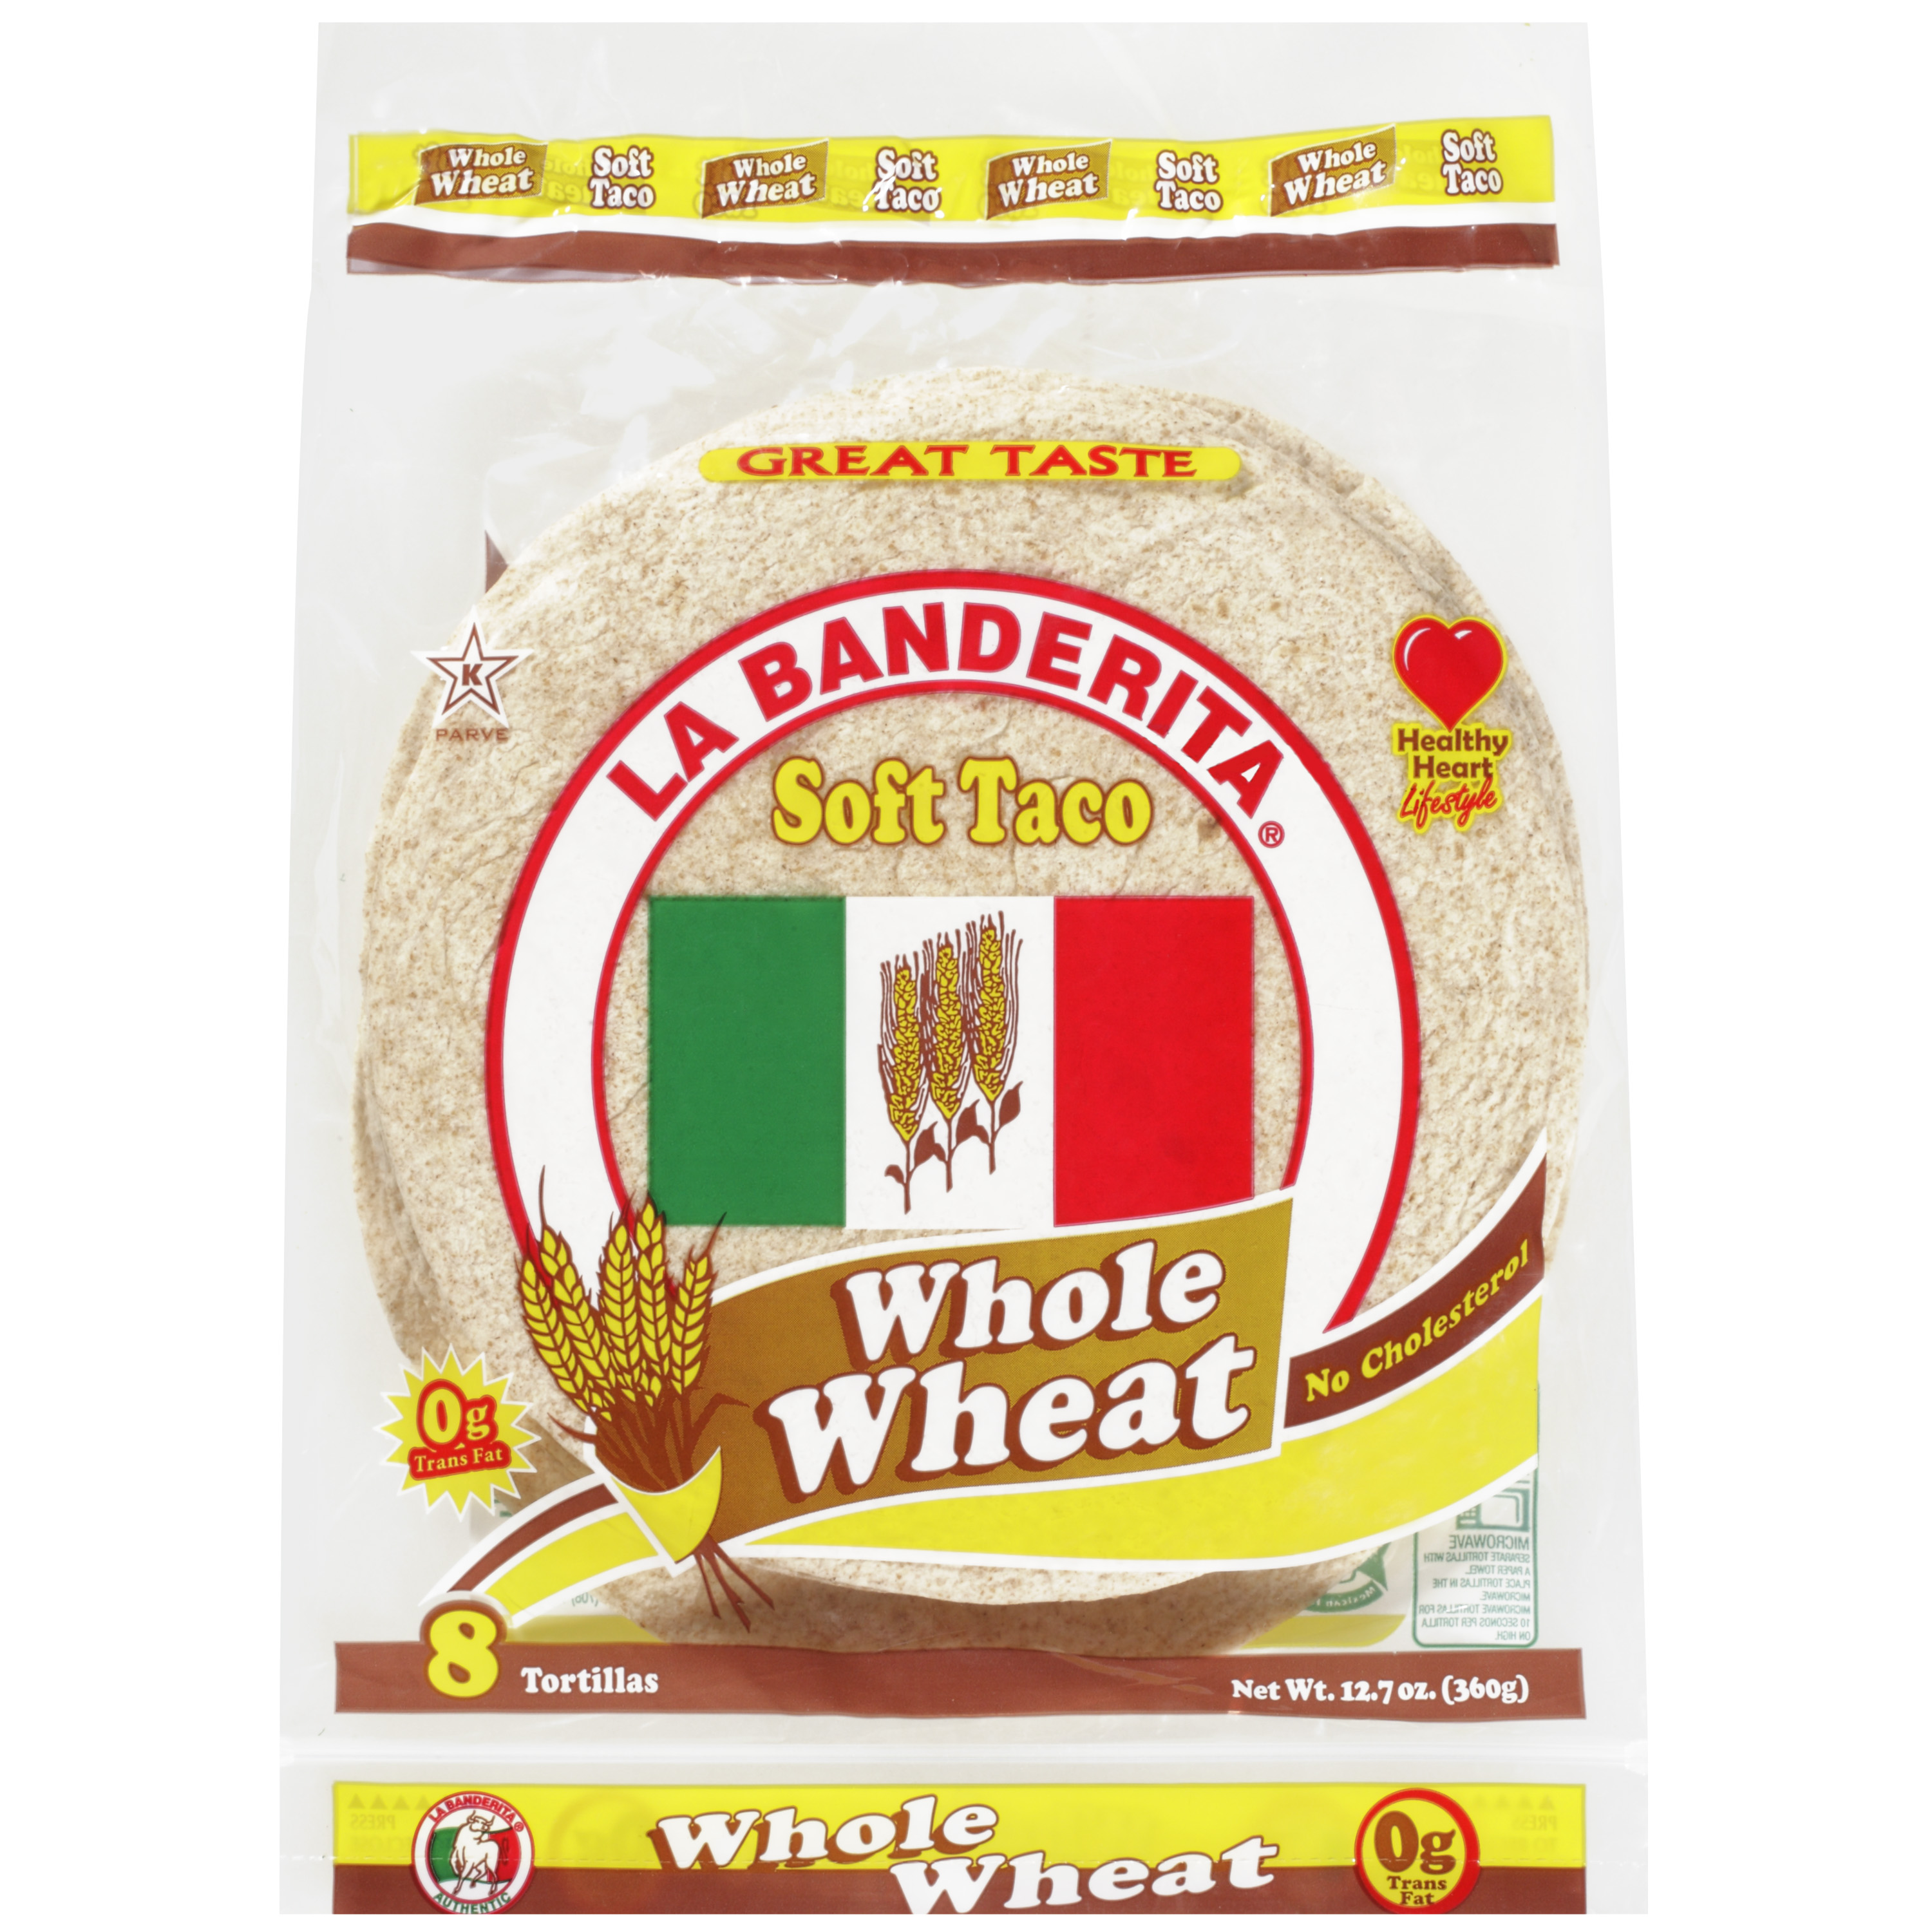 La Banderita Soft Taco Whole Wheat Tortillas, 8ct